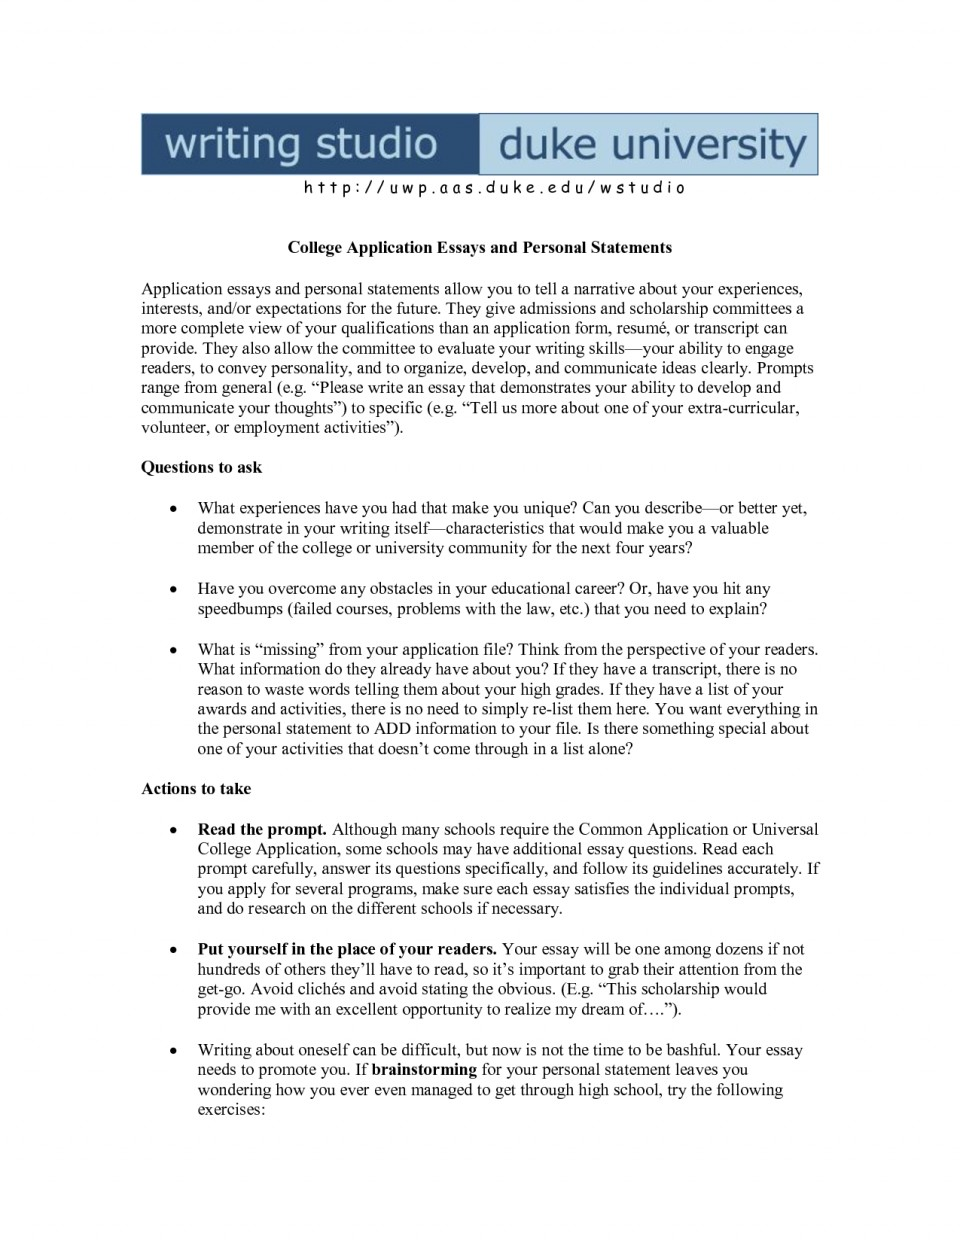 003 Uc Application Essay Fuvq4 College Questions Common App Staggering 2020 2017-18 960